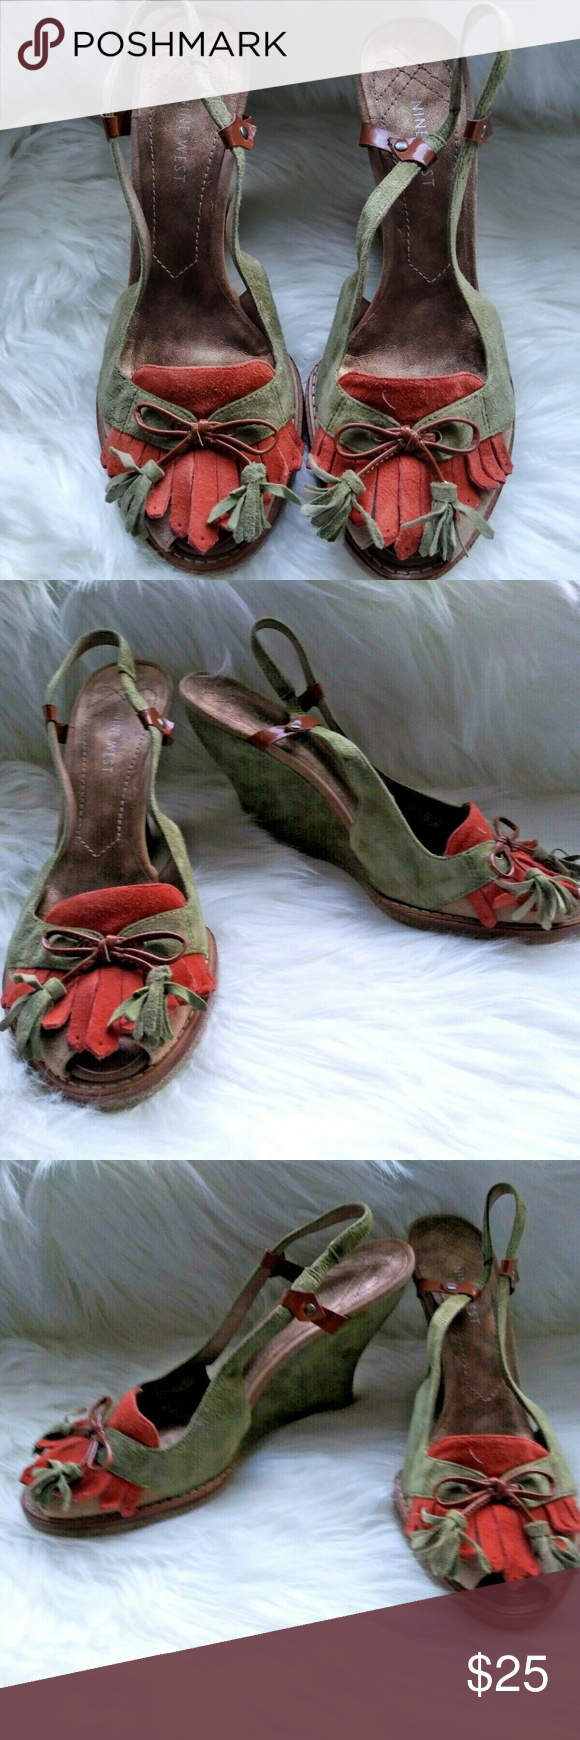 NINE WEST WEDGE SANDALS SIZE 7.5M NINE WEST WEDGE SANDALS SIZE 7.5M GREEN /ORANGE COLOR.#0227 THE COLOR'S VARY DEPENDING ON YOUR VIEWING DEVICE. NO STAINS,RIPS OR VISIBLE DAMAGE.PLEASE SEE PICTURES! IF THERE ANY QUESTIONS FEEL FREE TO MESSAGE US. Nine West Shoes Wedges